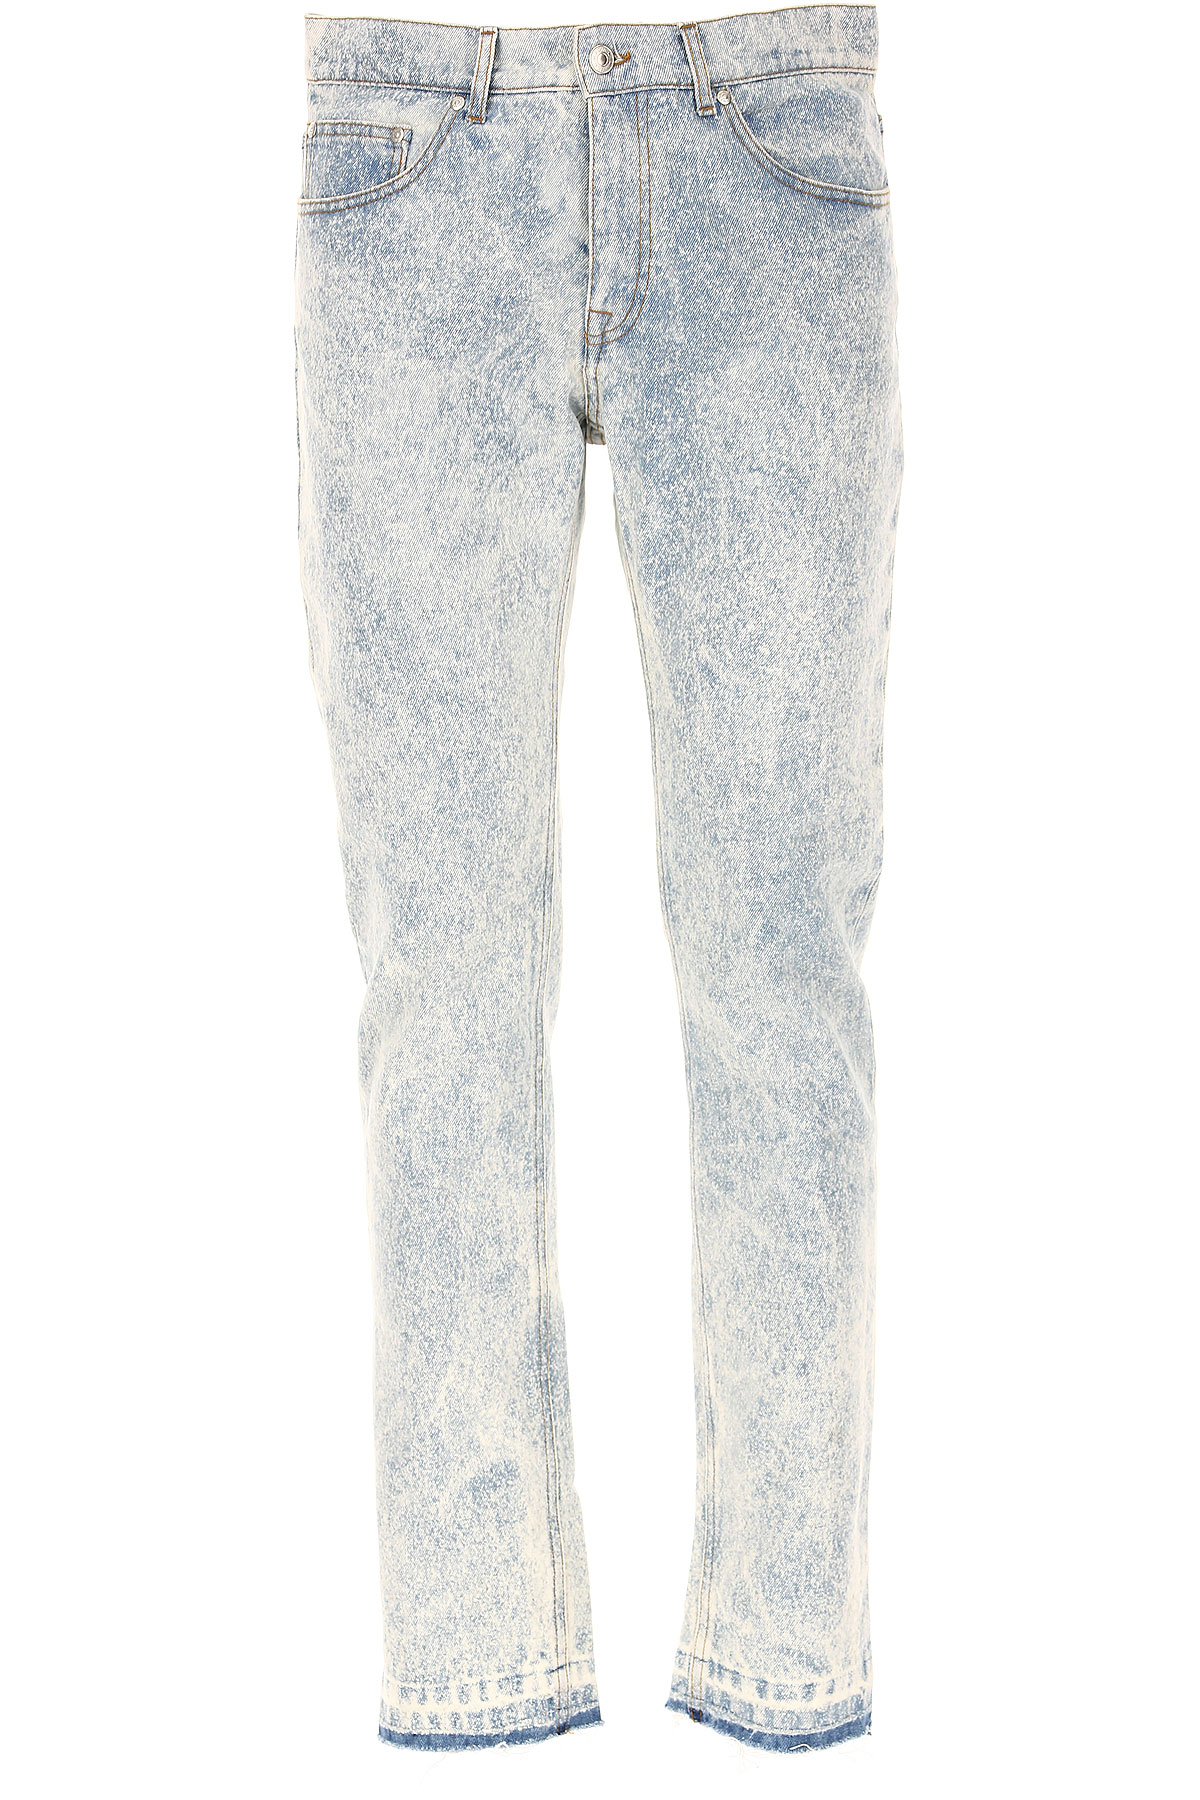 MSGM Jeans On Sale in Outlet, Denim Light Blue, Cotton, 2017, 32 34